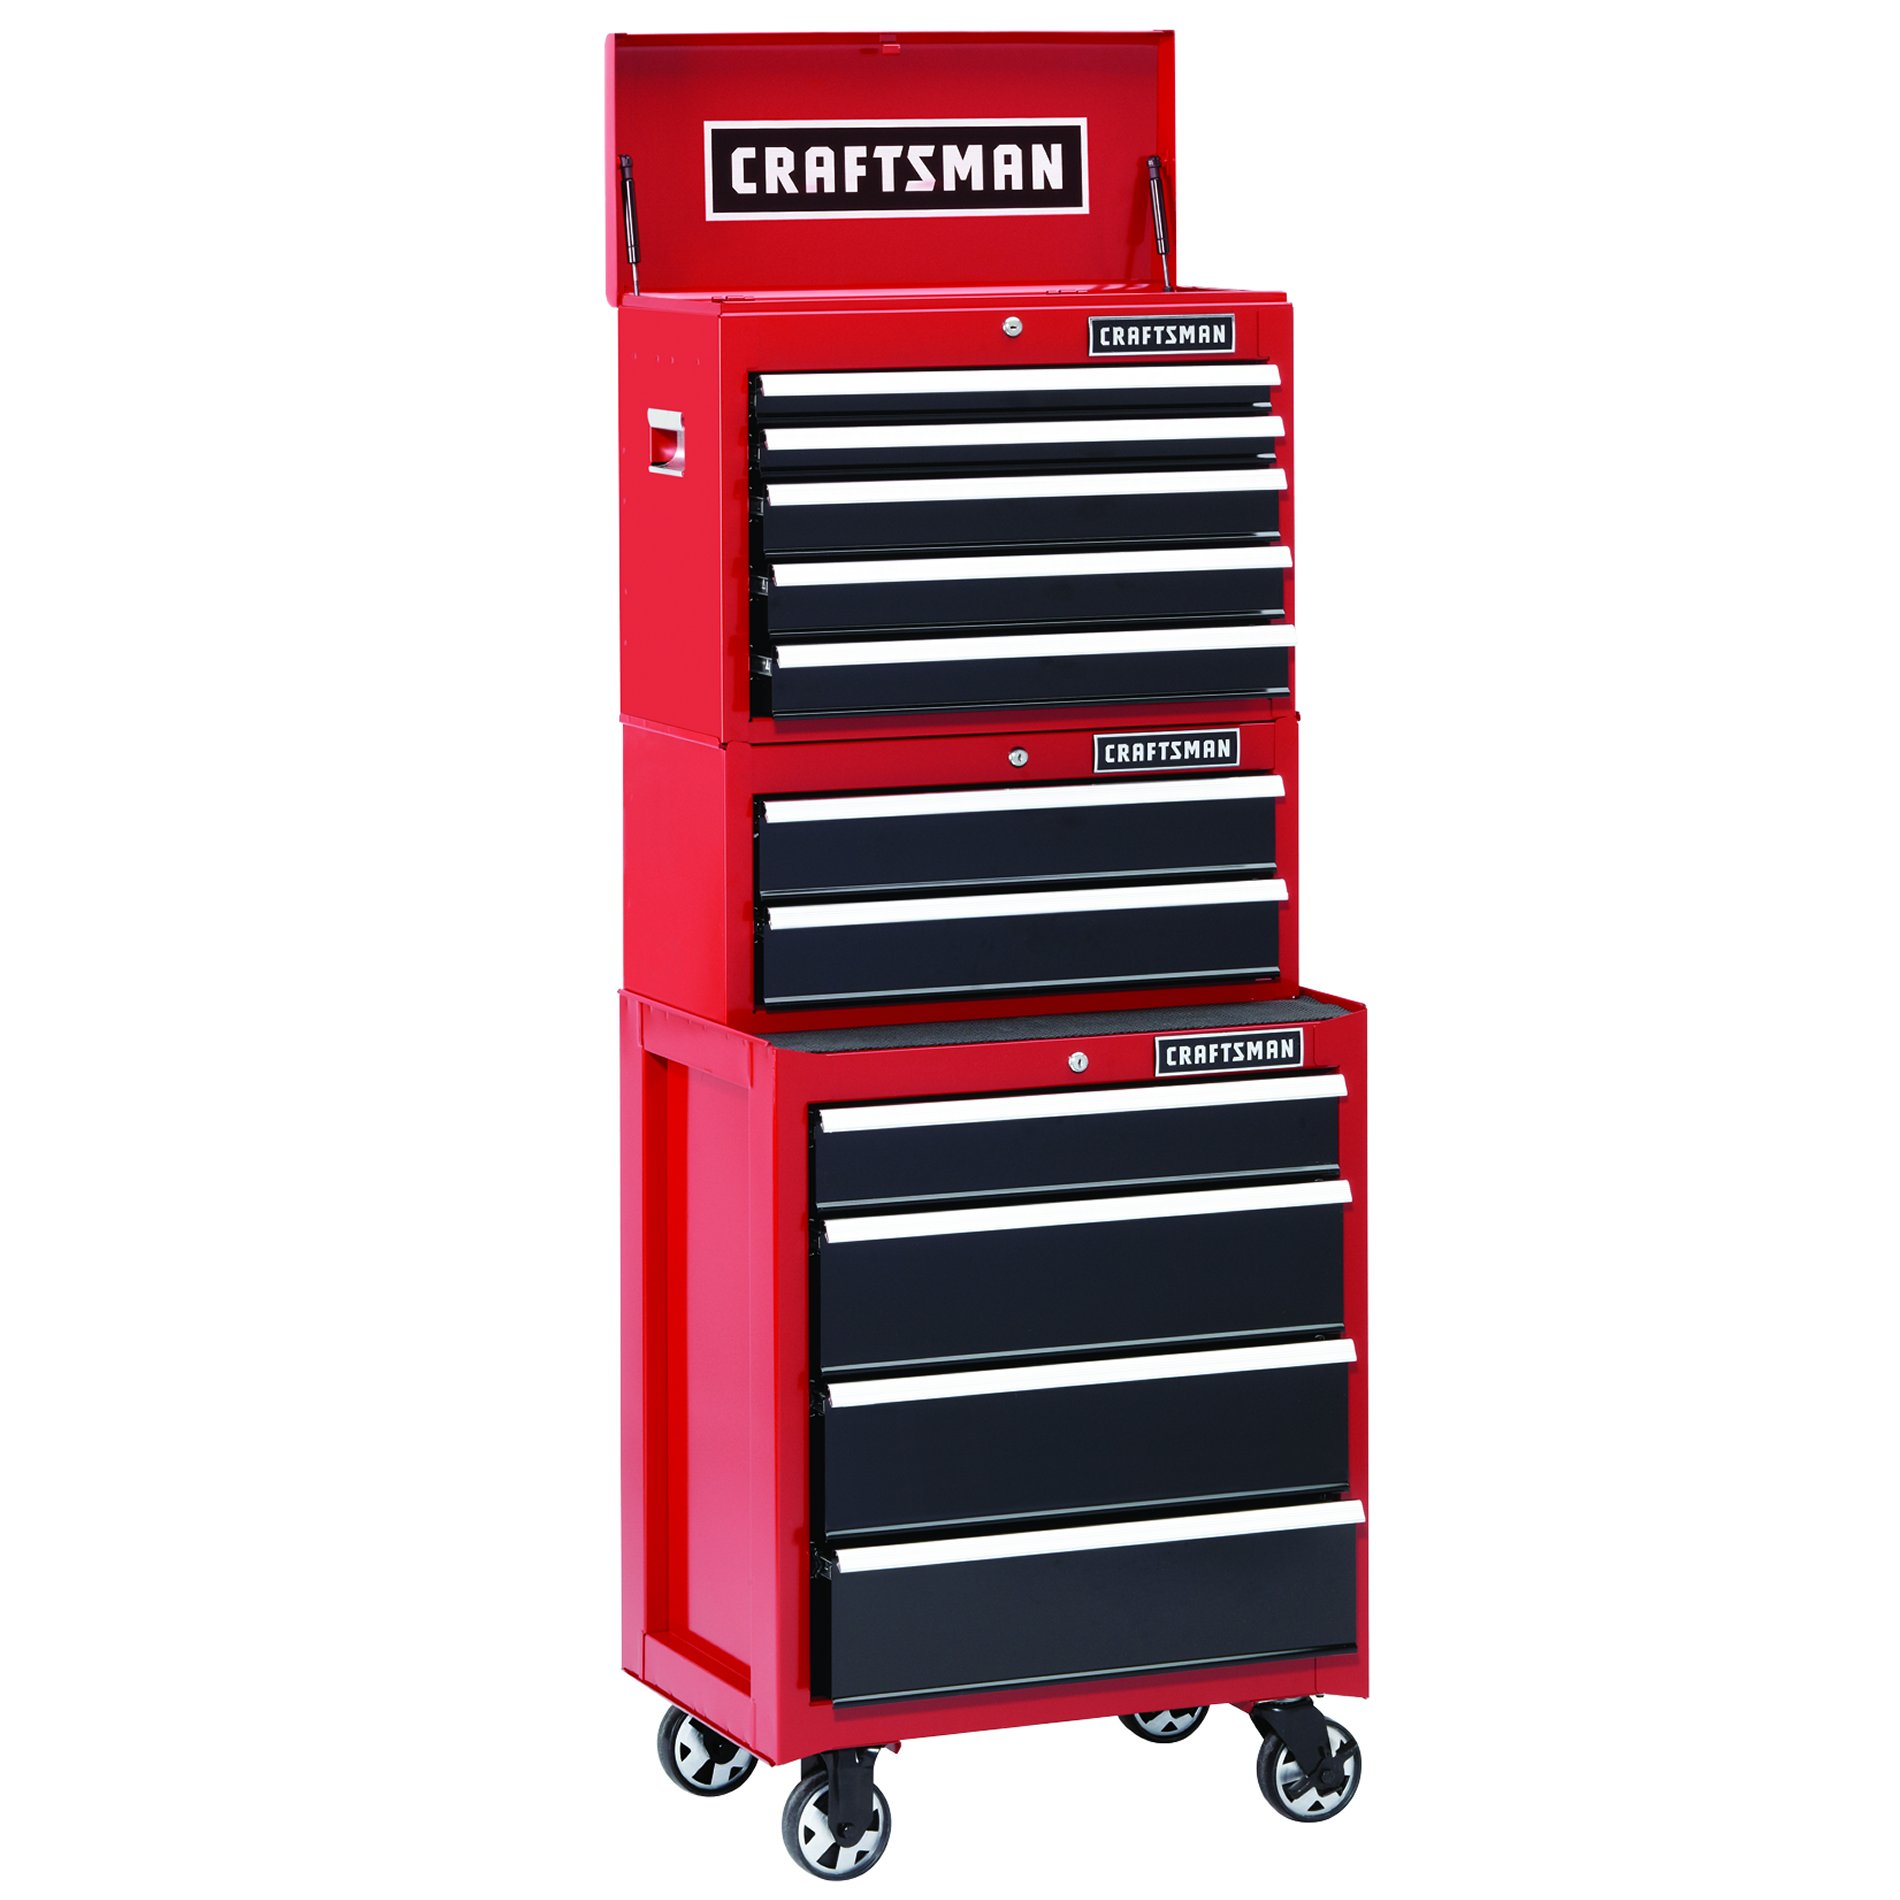 Craftsman 26 in. 2-Drawer Heavy-Duty Ball Bearing Middle Chest - Red/Black